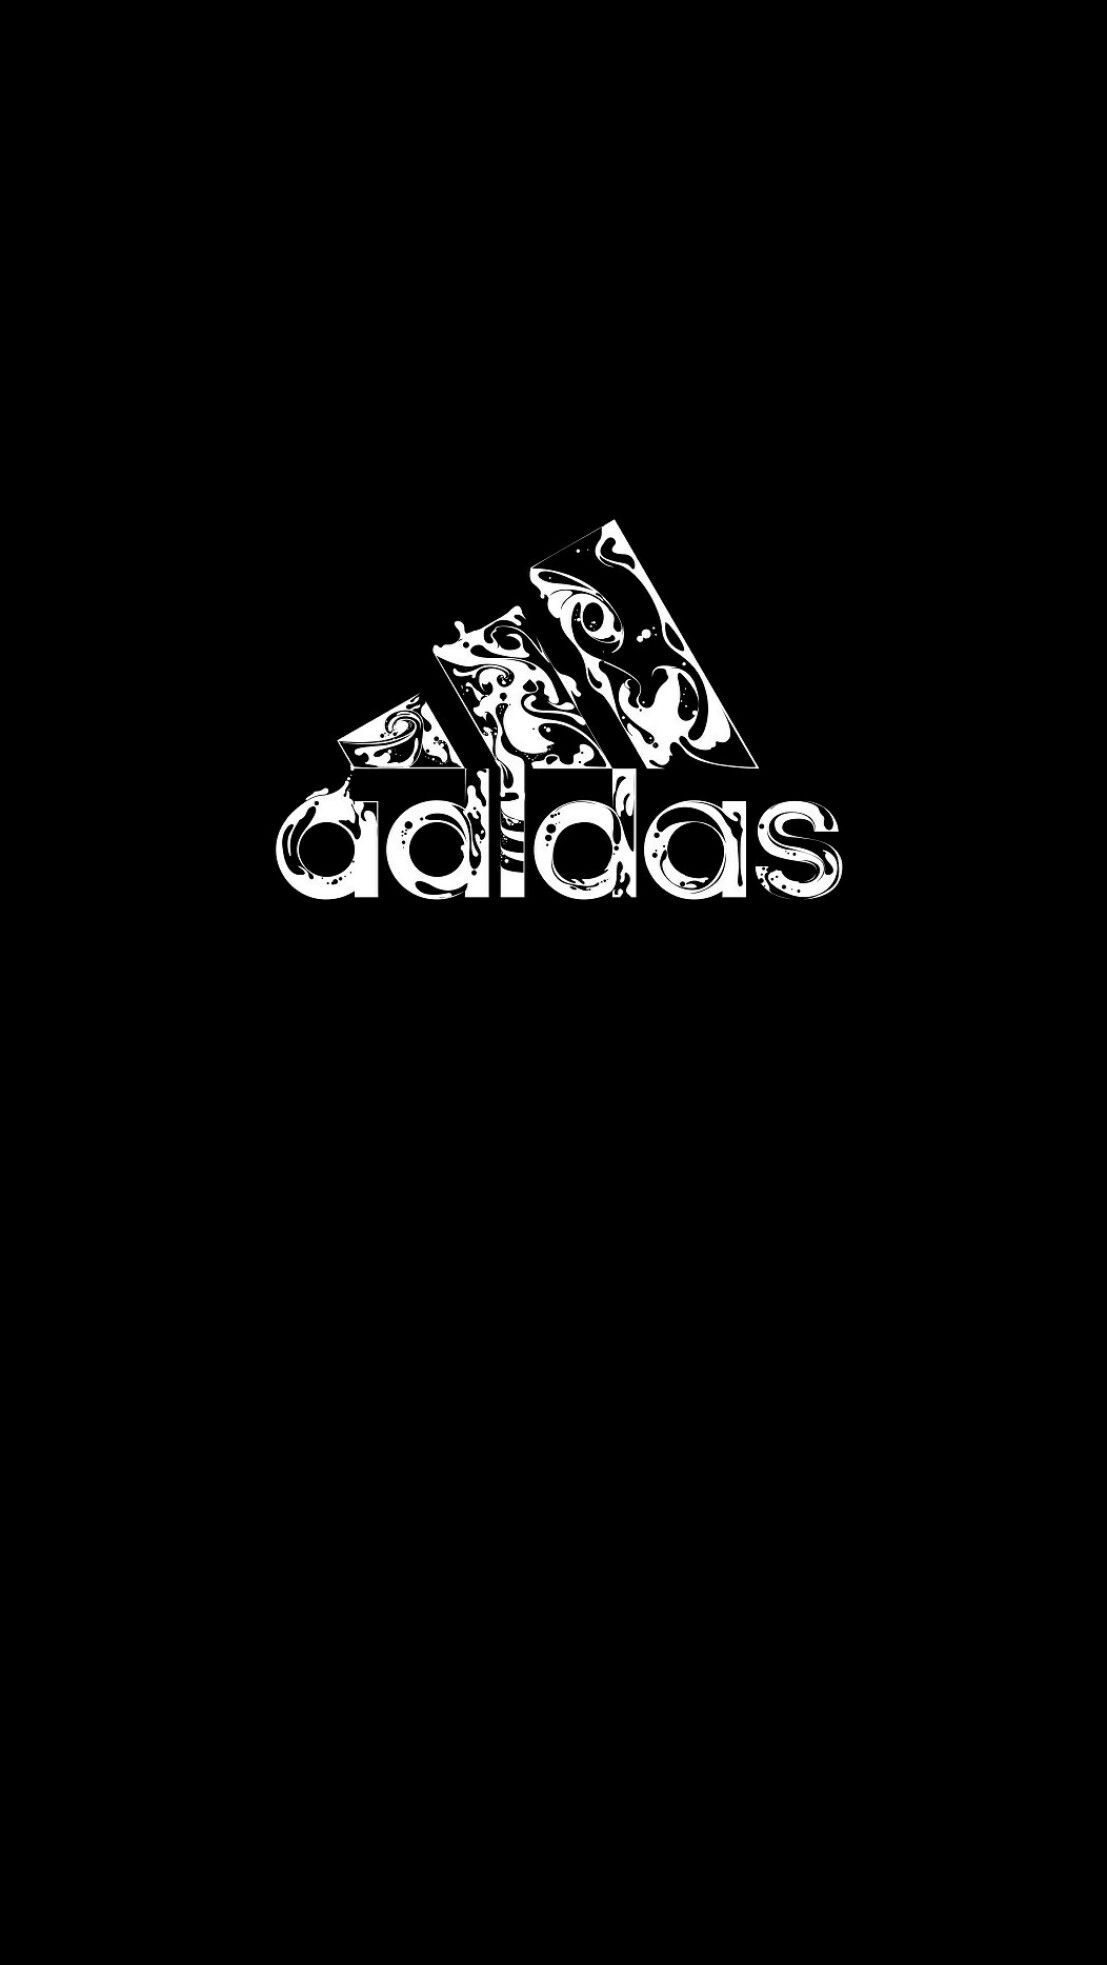 Best Adidas Camouflage Wallpaper Iphone Android From I Pinimg